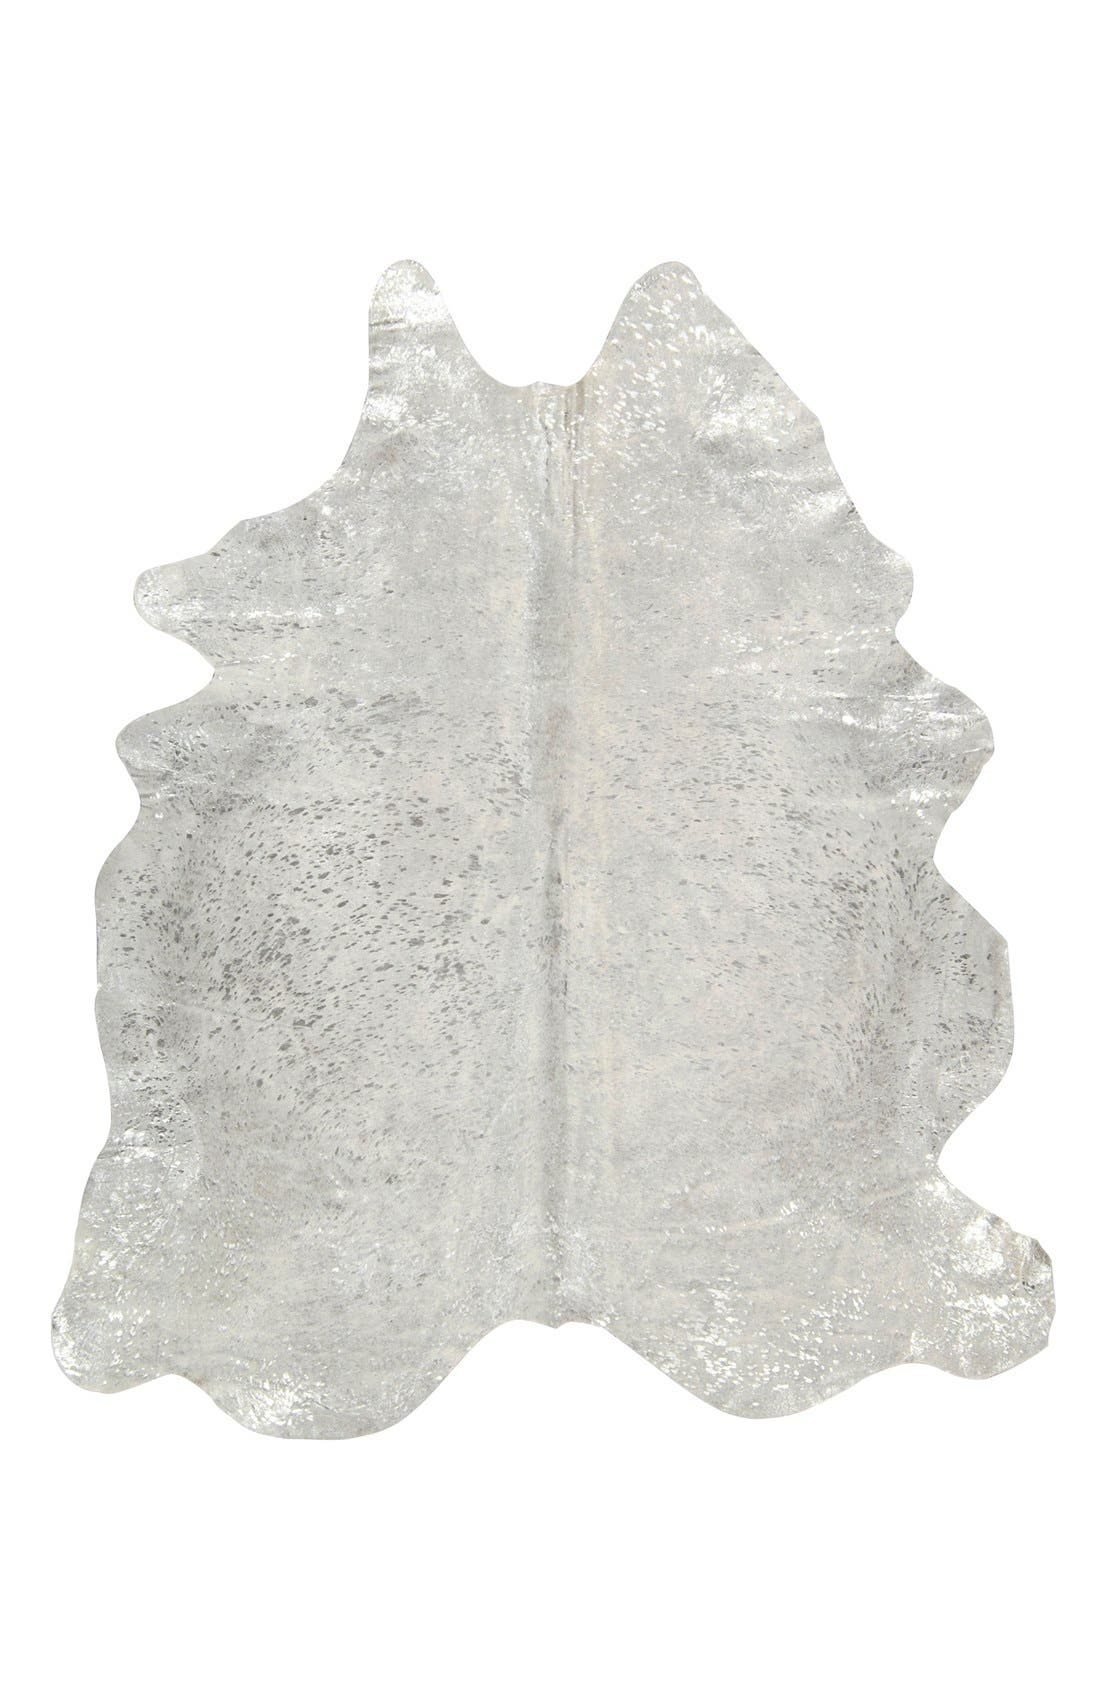 'Metallic Splash' Genuine Cowhide Rug,                         Main,                         color, Silver